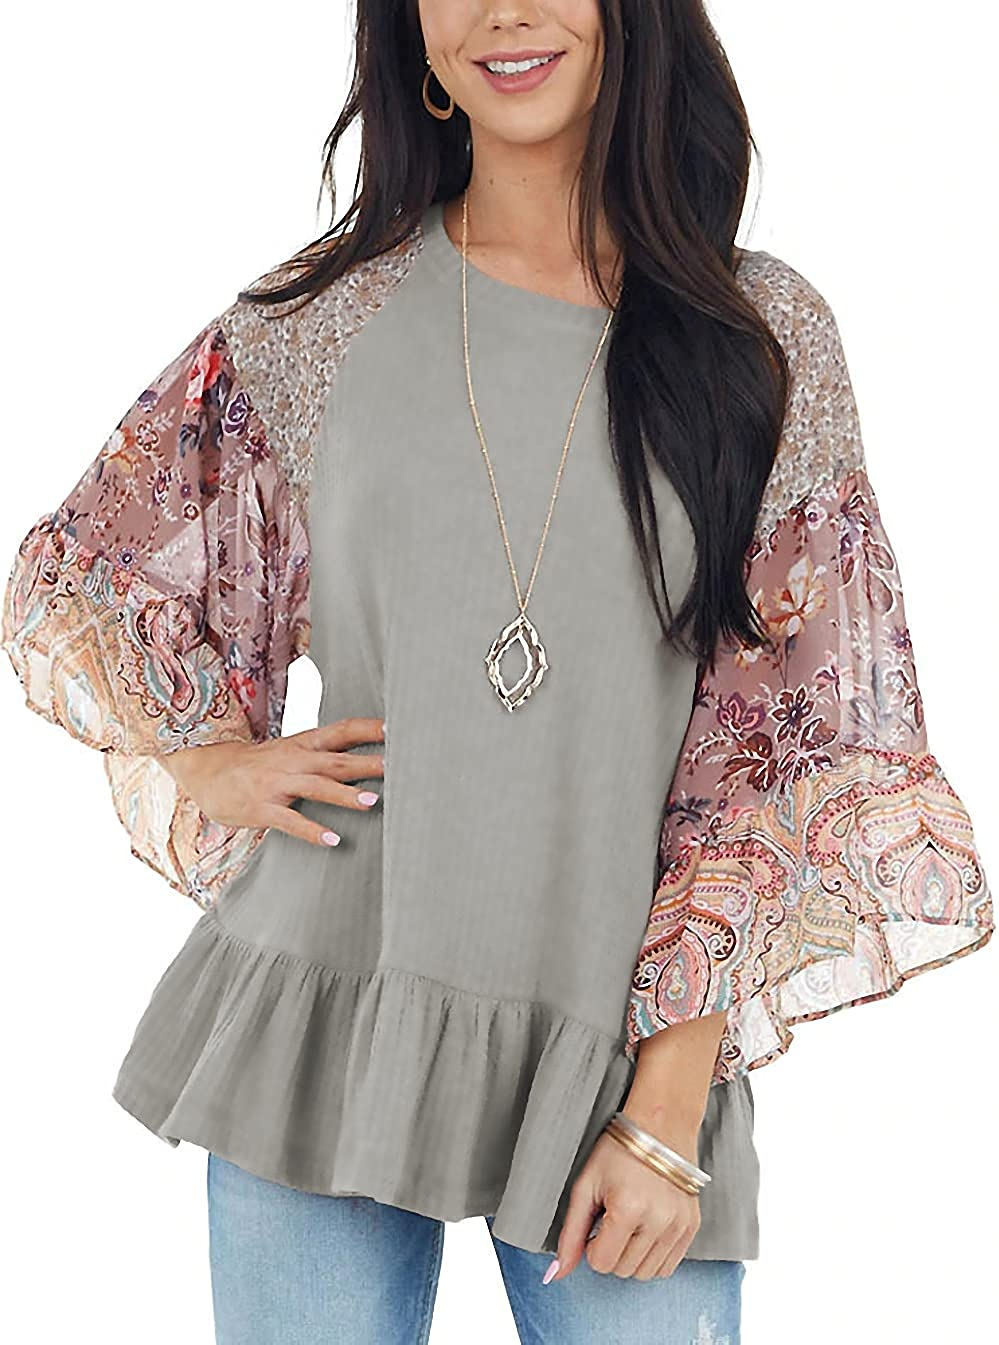 Allimy Womens Multi Floral Ruffle 3/4 Sleeves Blouses Loose Rounded Neckline Tops Shirts